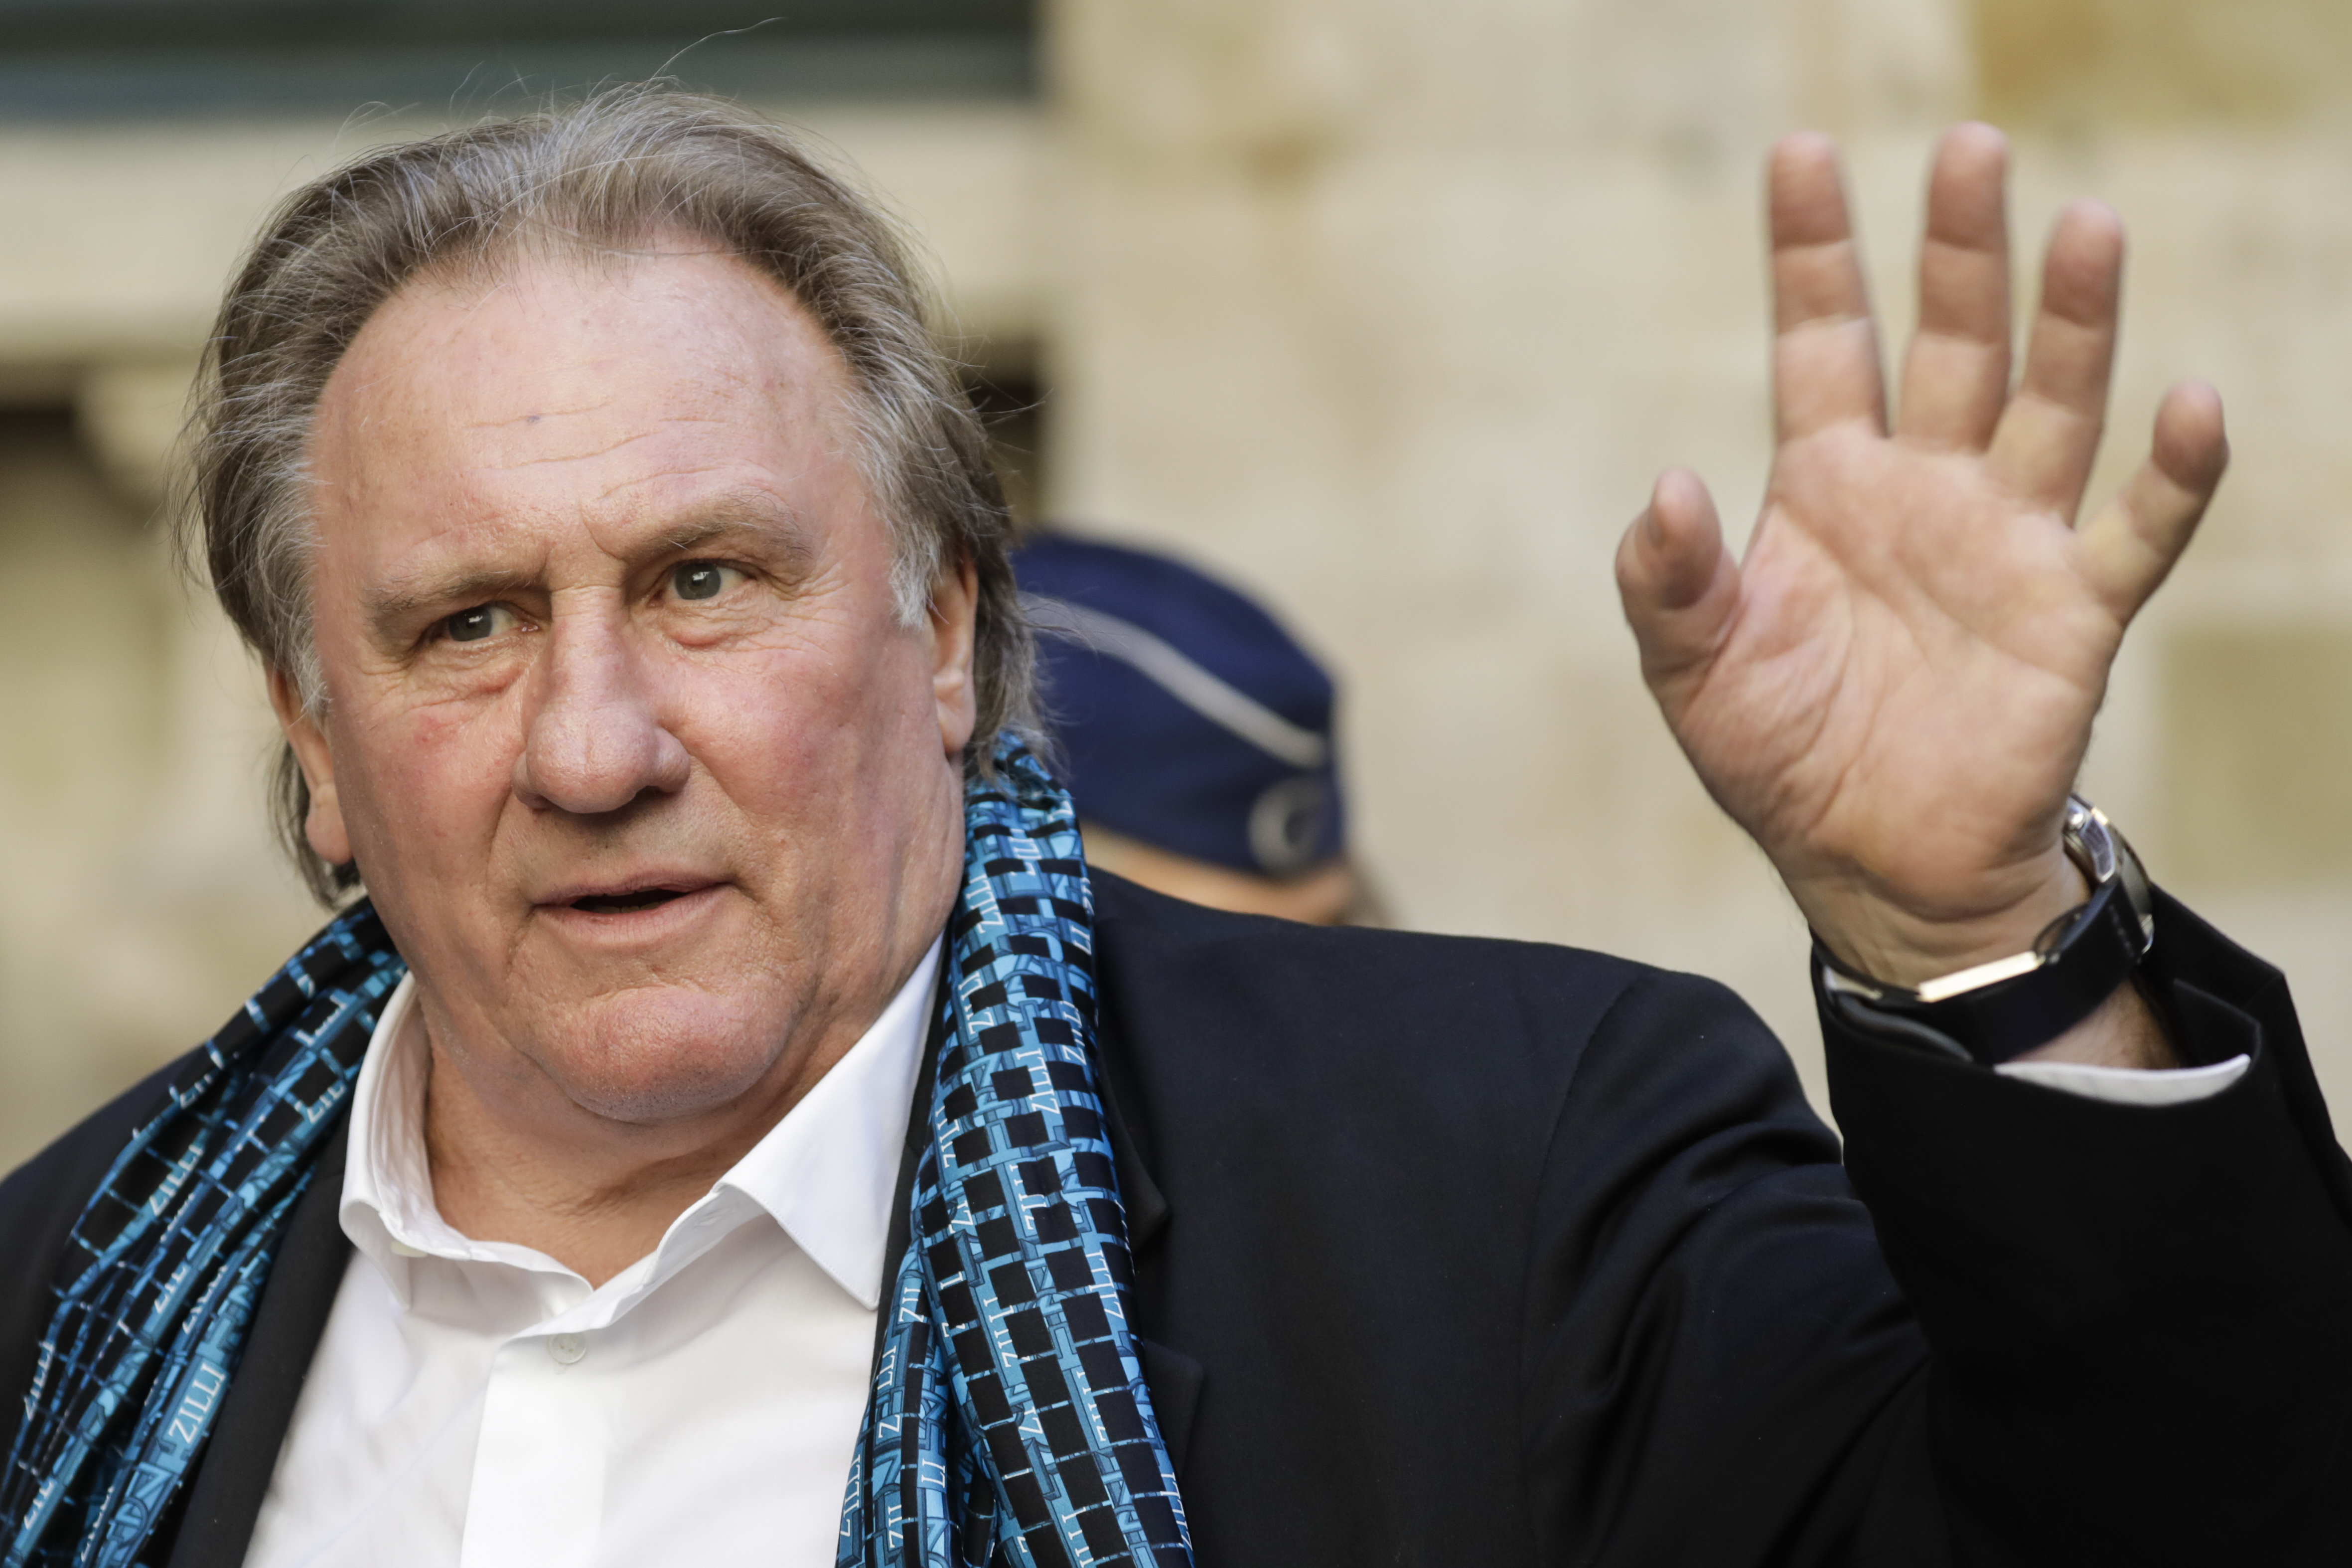 Gerard Depardieu was sentenced to a fine for drunk driving 09.04.2014 43